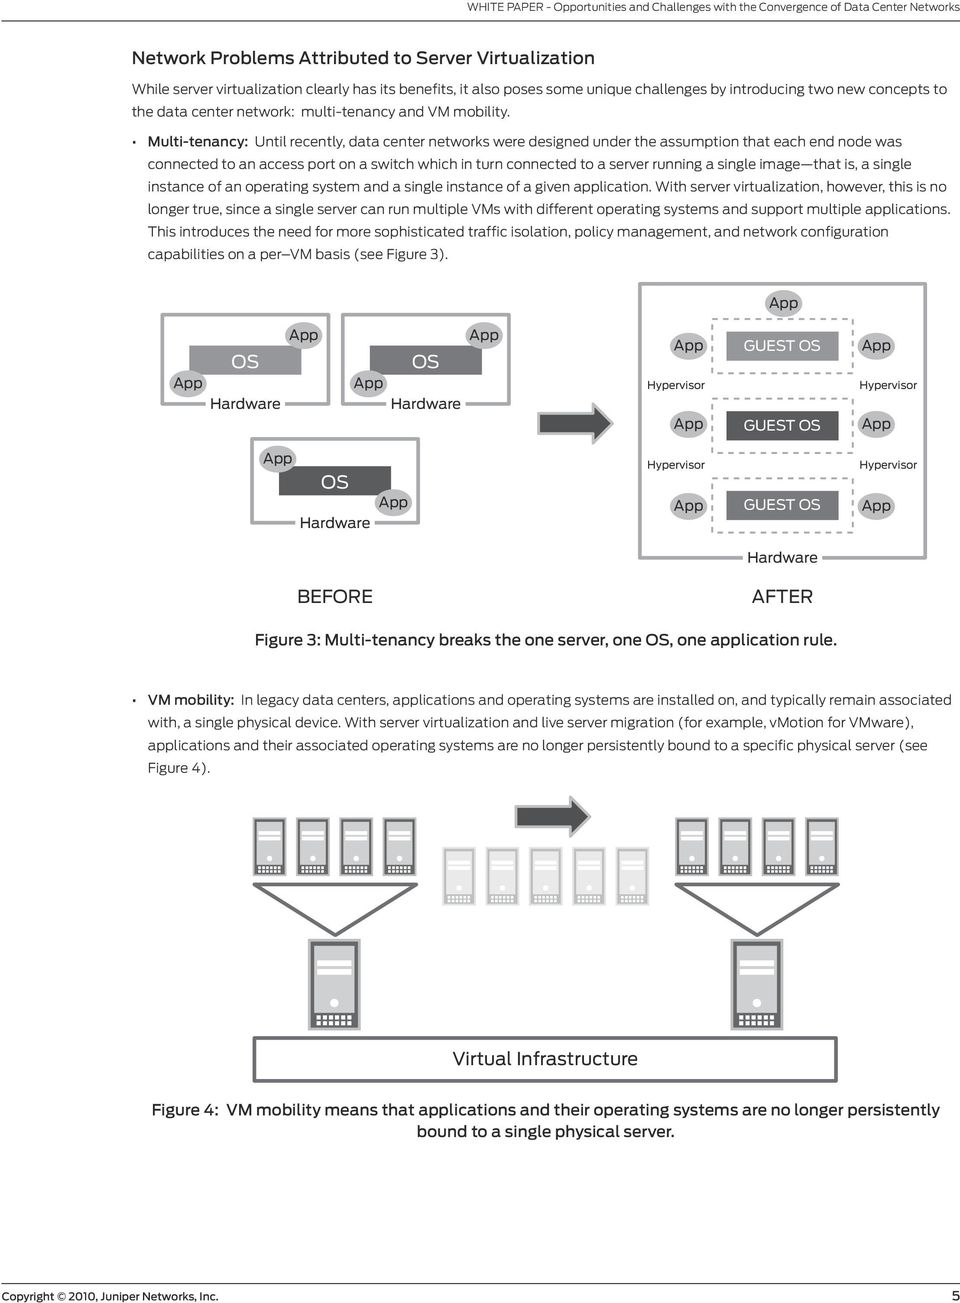 Multi-tenancy: Until recently, data center networks were designed under the assumption that each end node was connected to an access port on a switch which in turn connected to a server running a